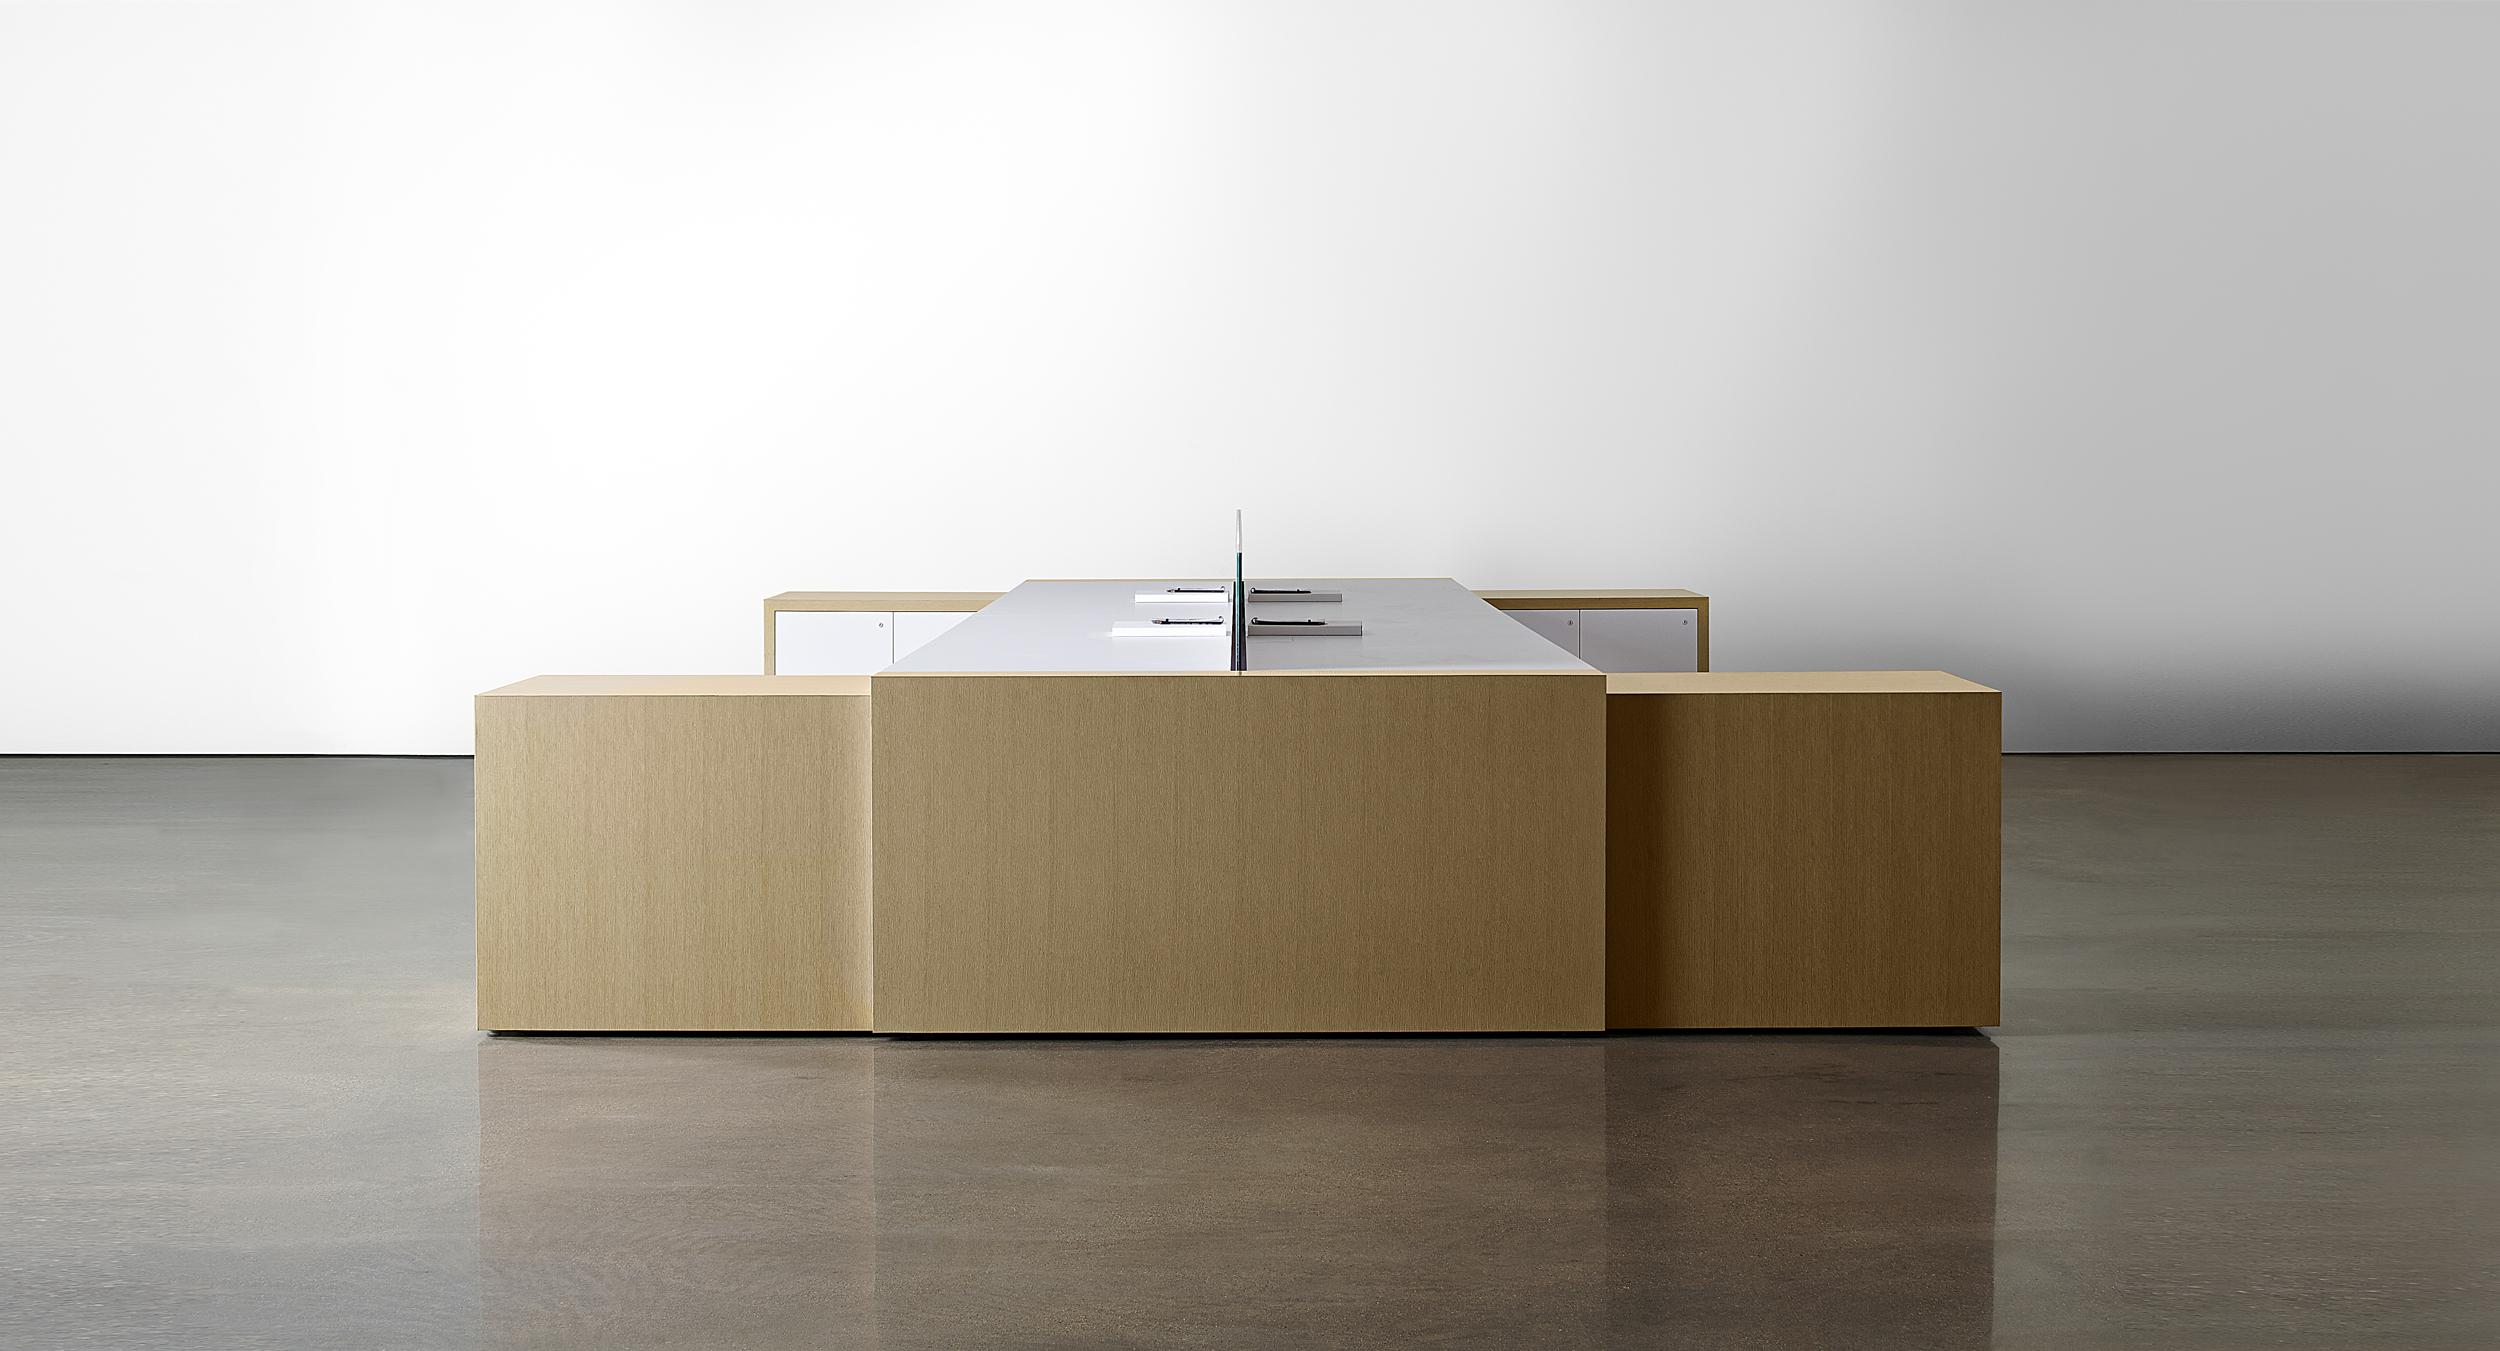 Perfectly mitered casework and joinery create pure modern forms.